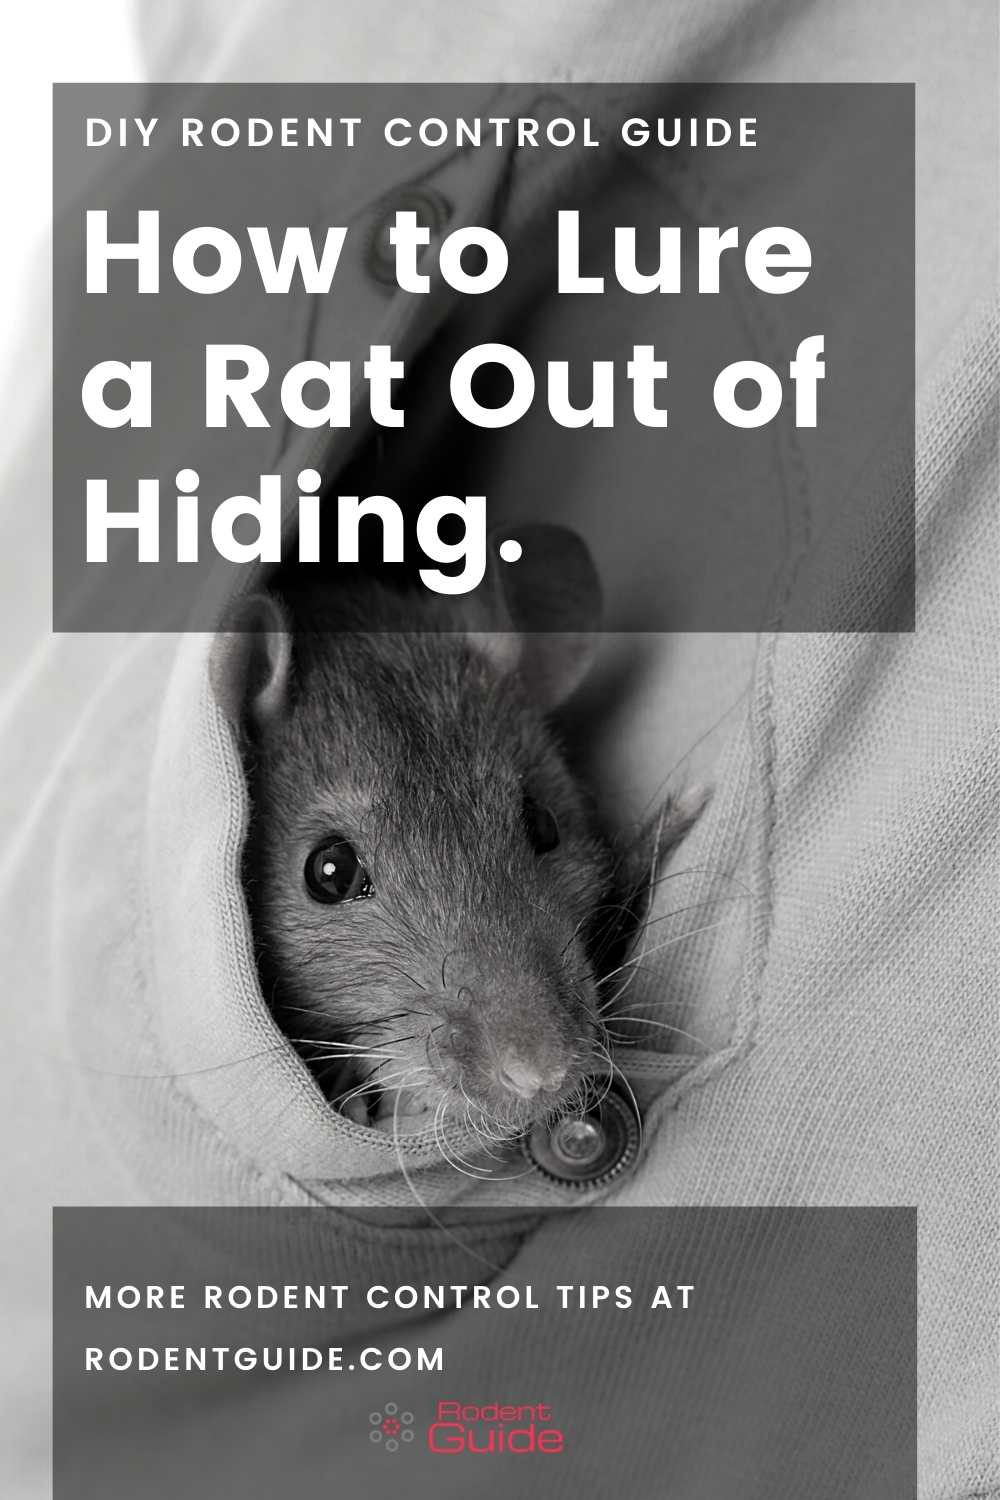 How to Lure a Rat Out of Hiding